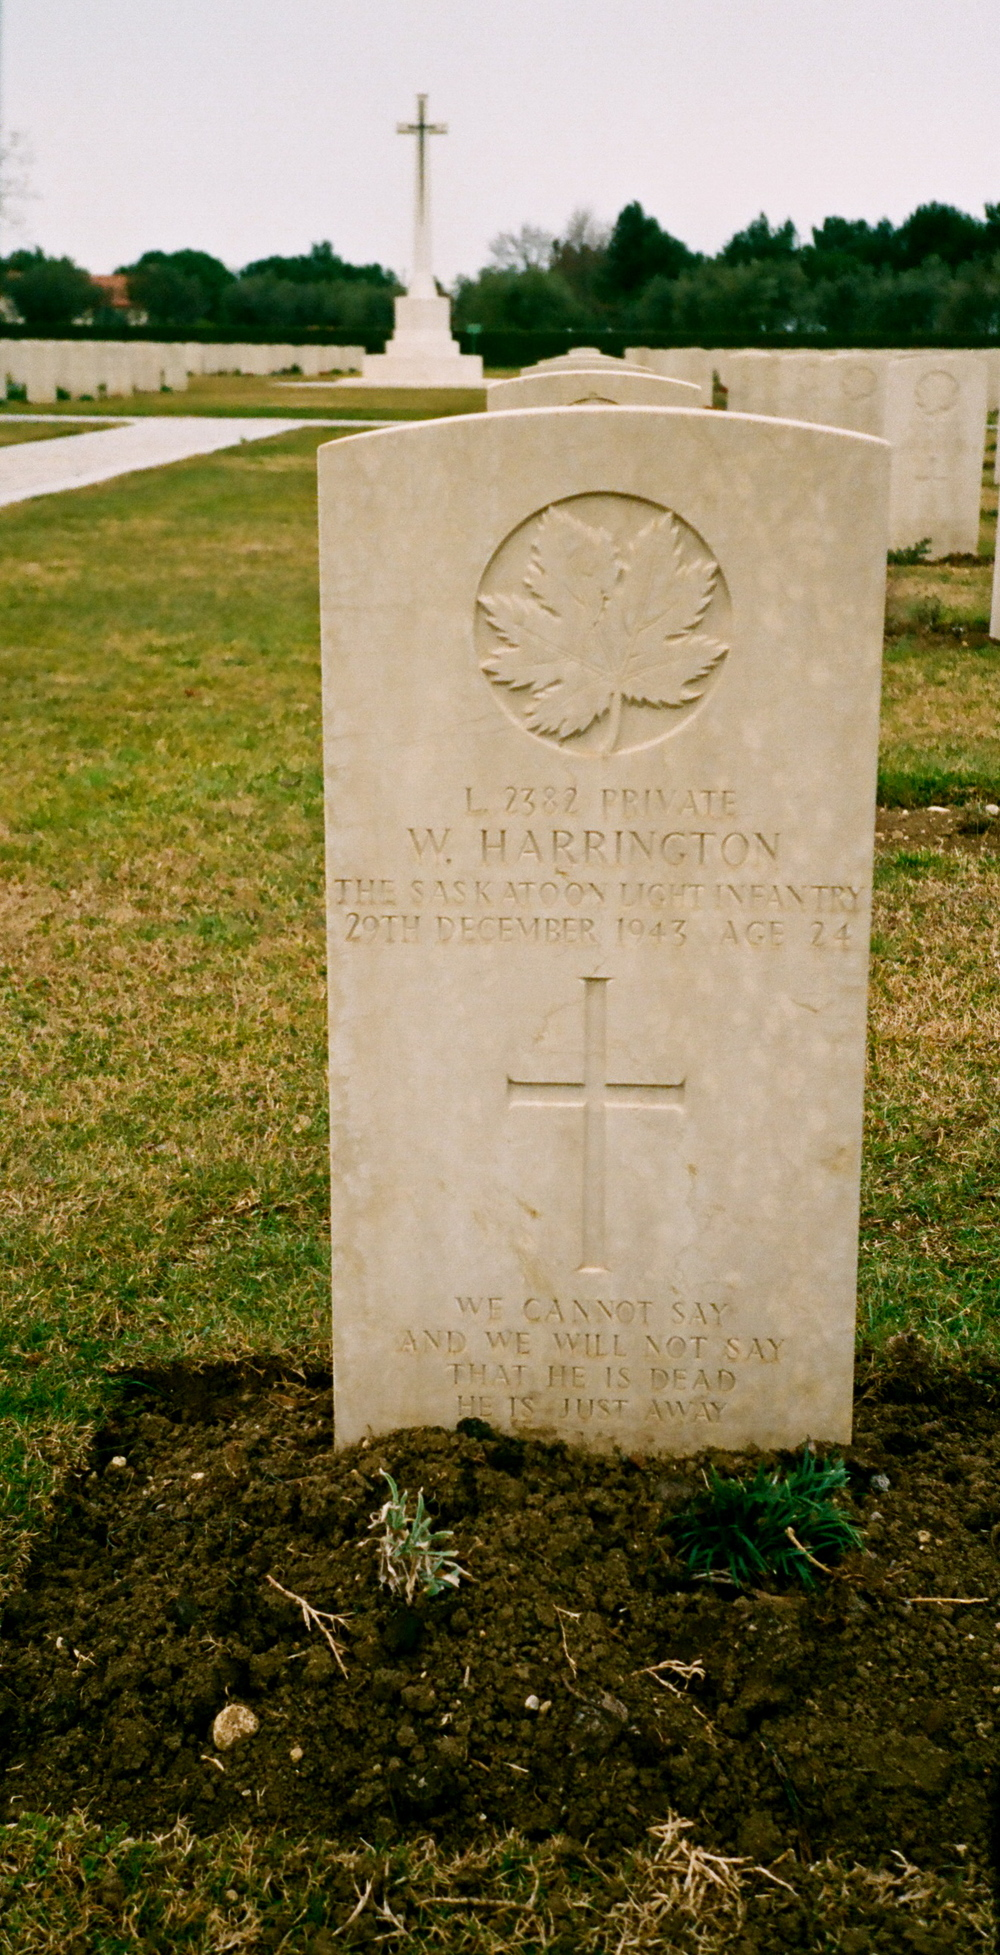 "The gravestone of Private W. Harrington Age 24  ""We cannot say and we will not say that he is dead he is just away"""